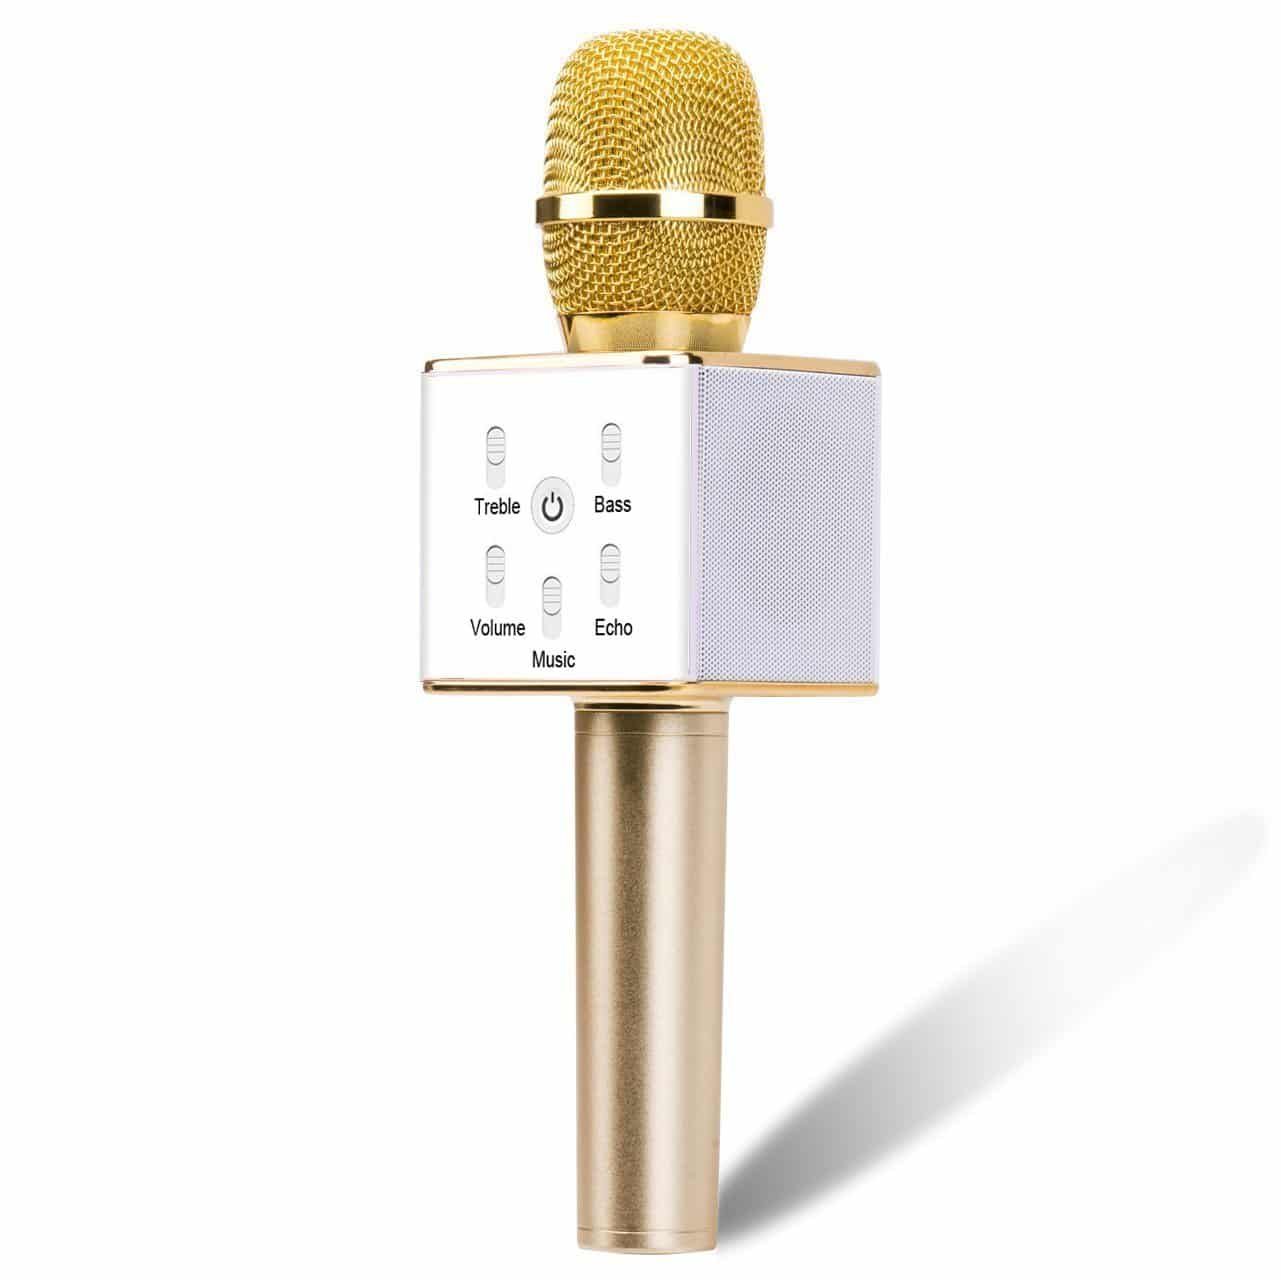 Punicok Portable Wireless Karaoke Microphone Reviews, Coupons, and